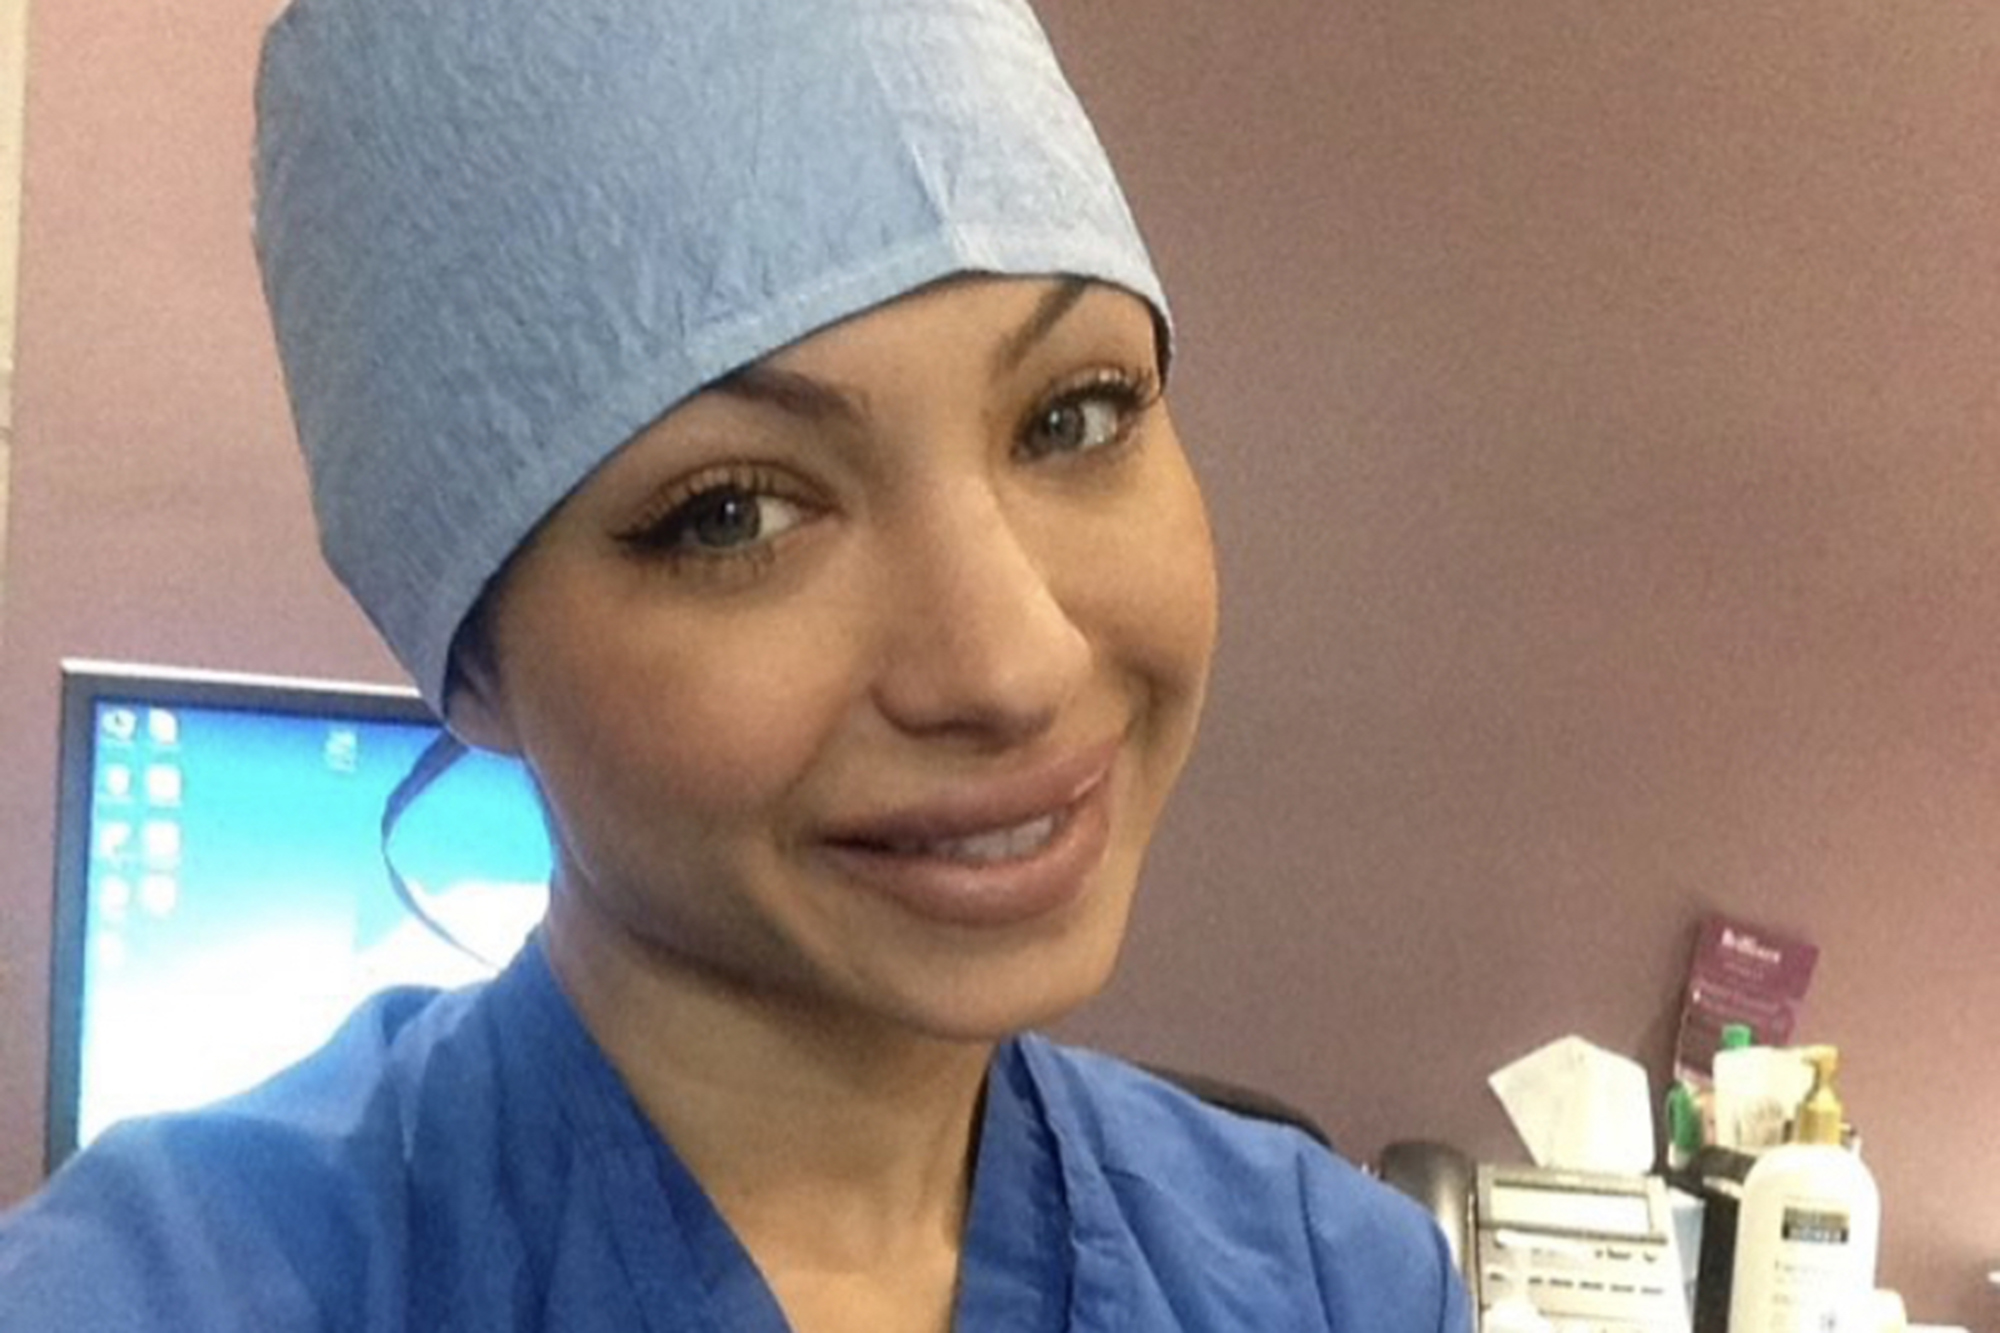 NYC plastic surgeon slapped with second sexual harassment suit